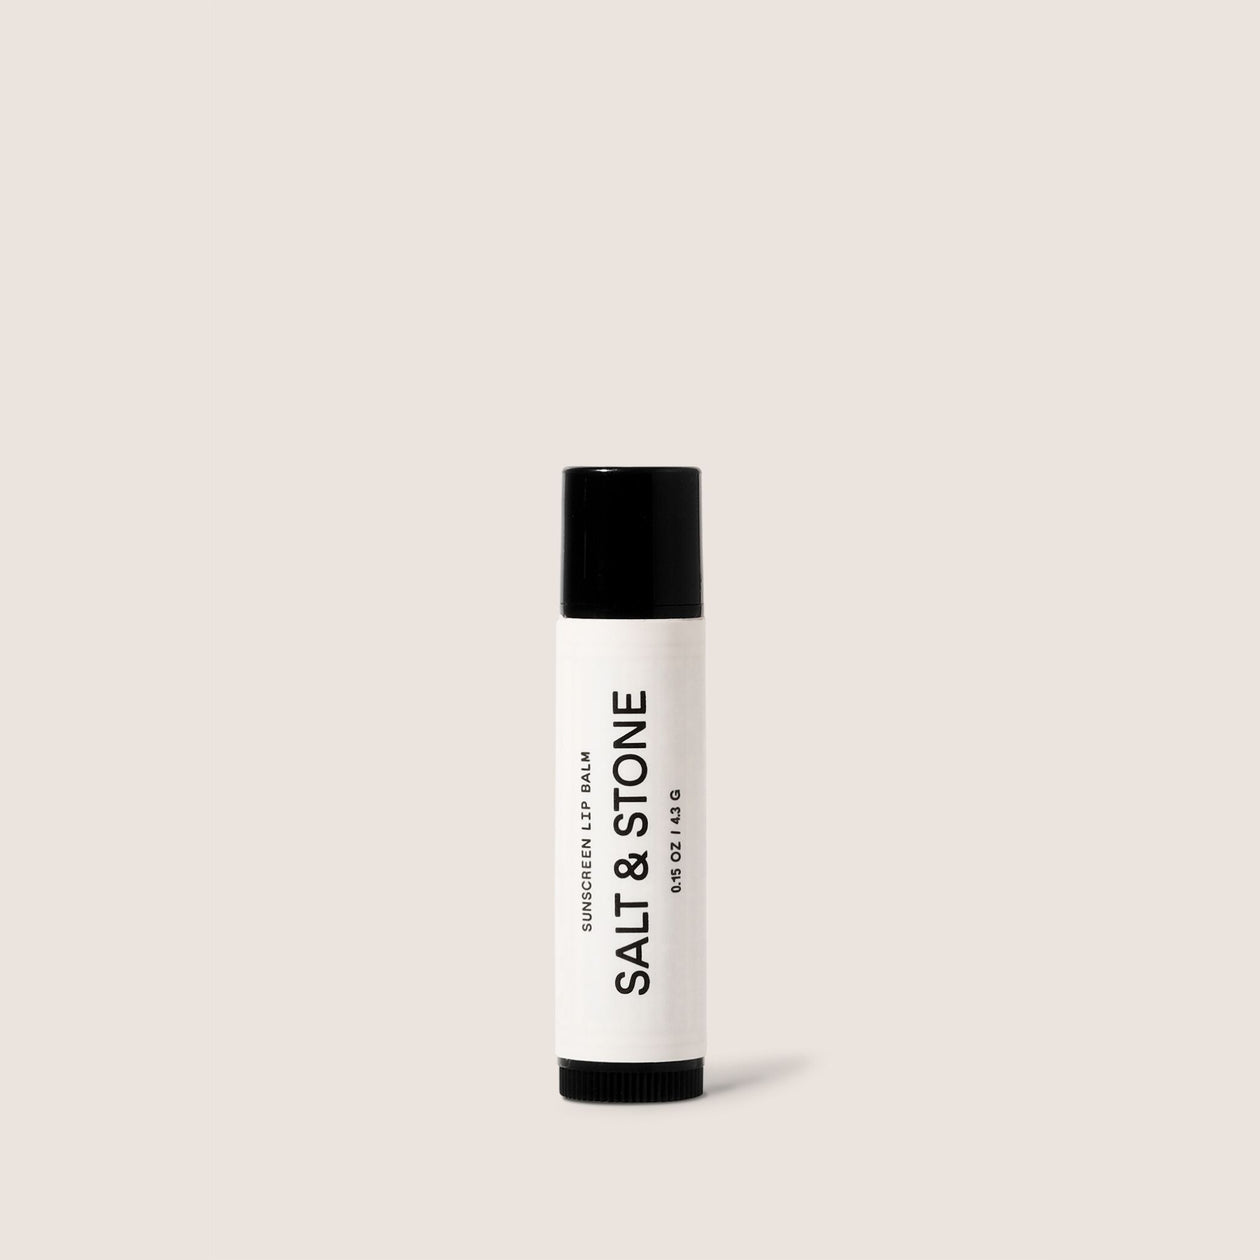 SPF 30 Lip Balm from Salt + Stone